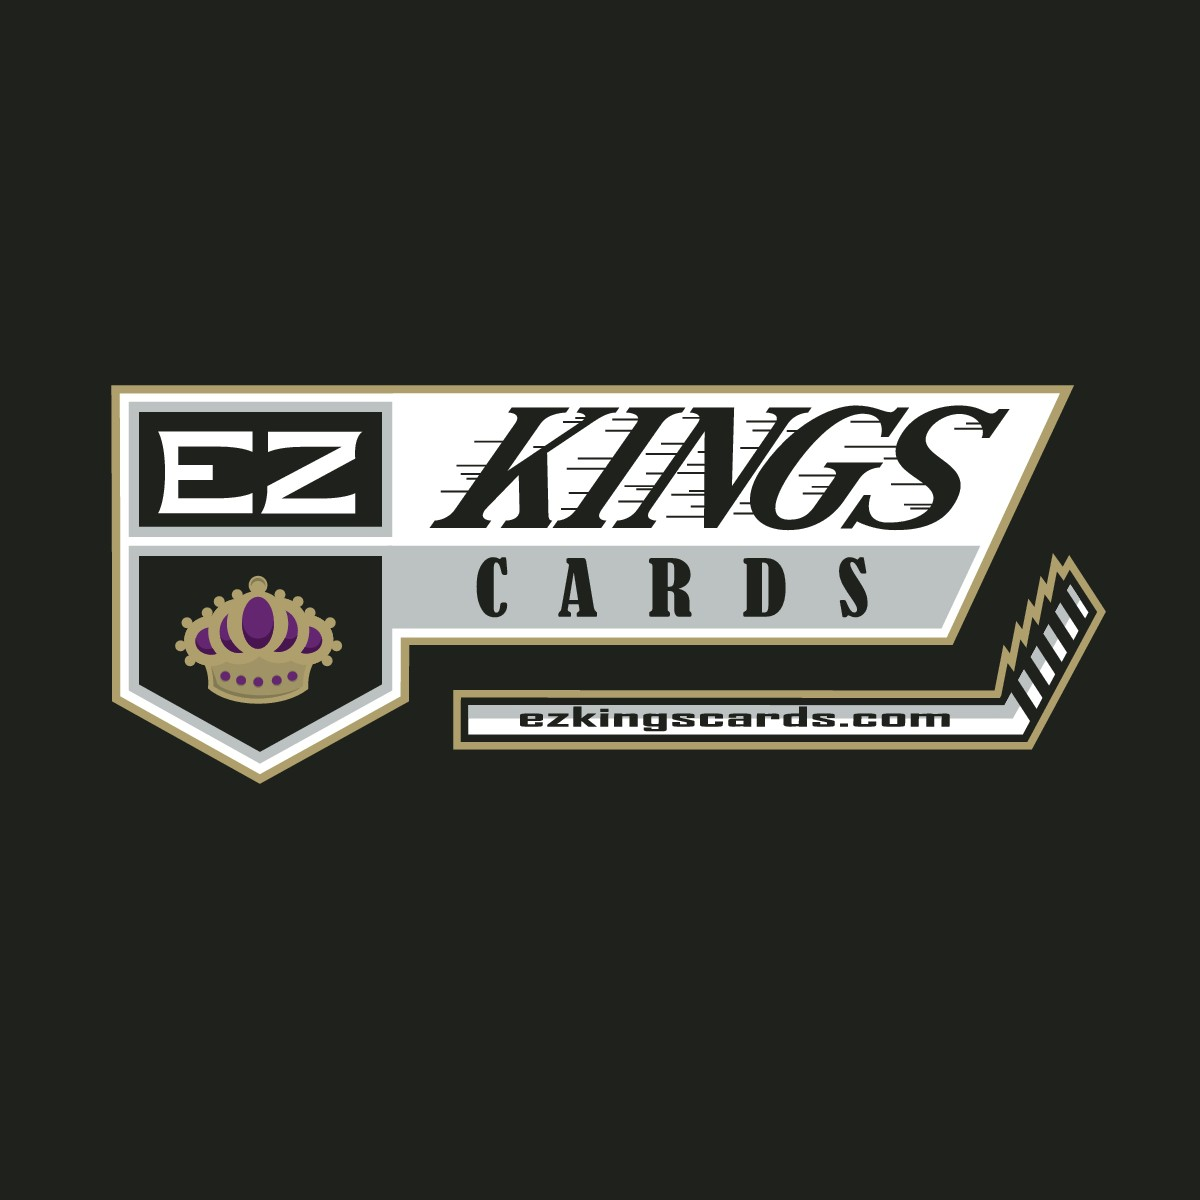 ezkingscards.com